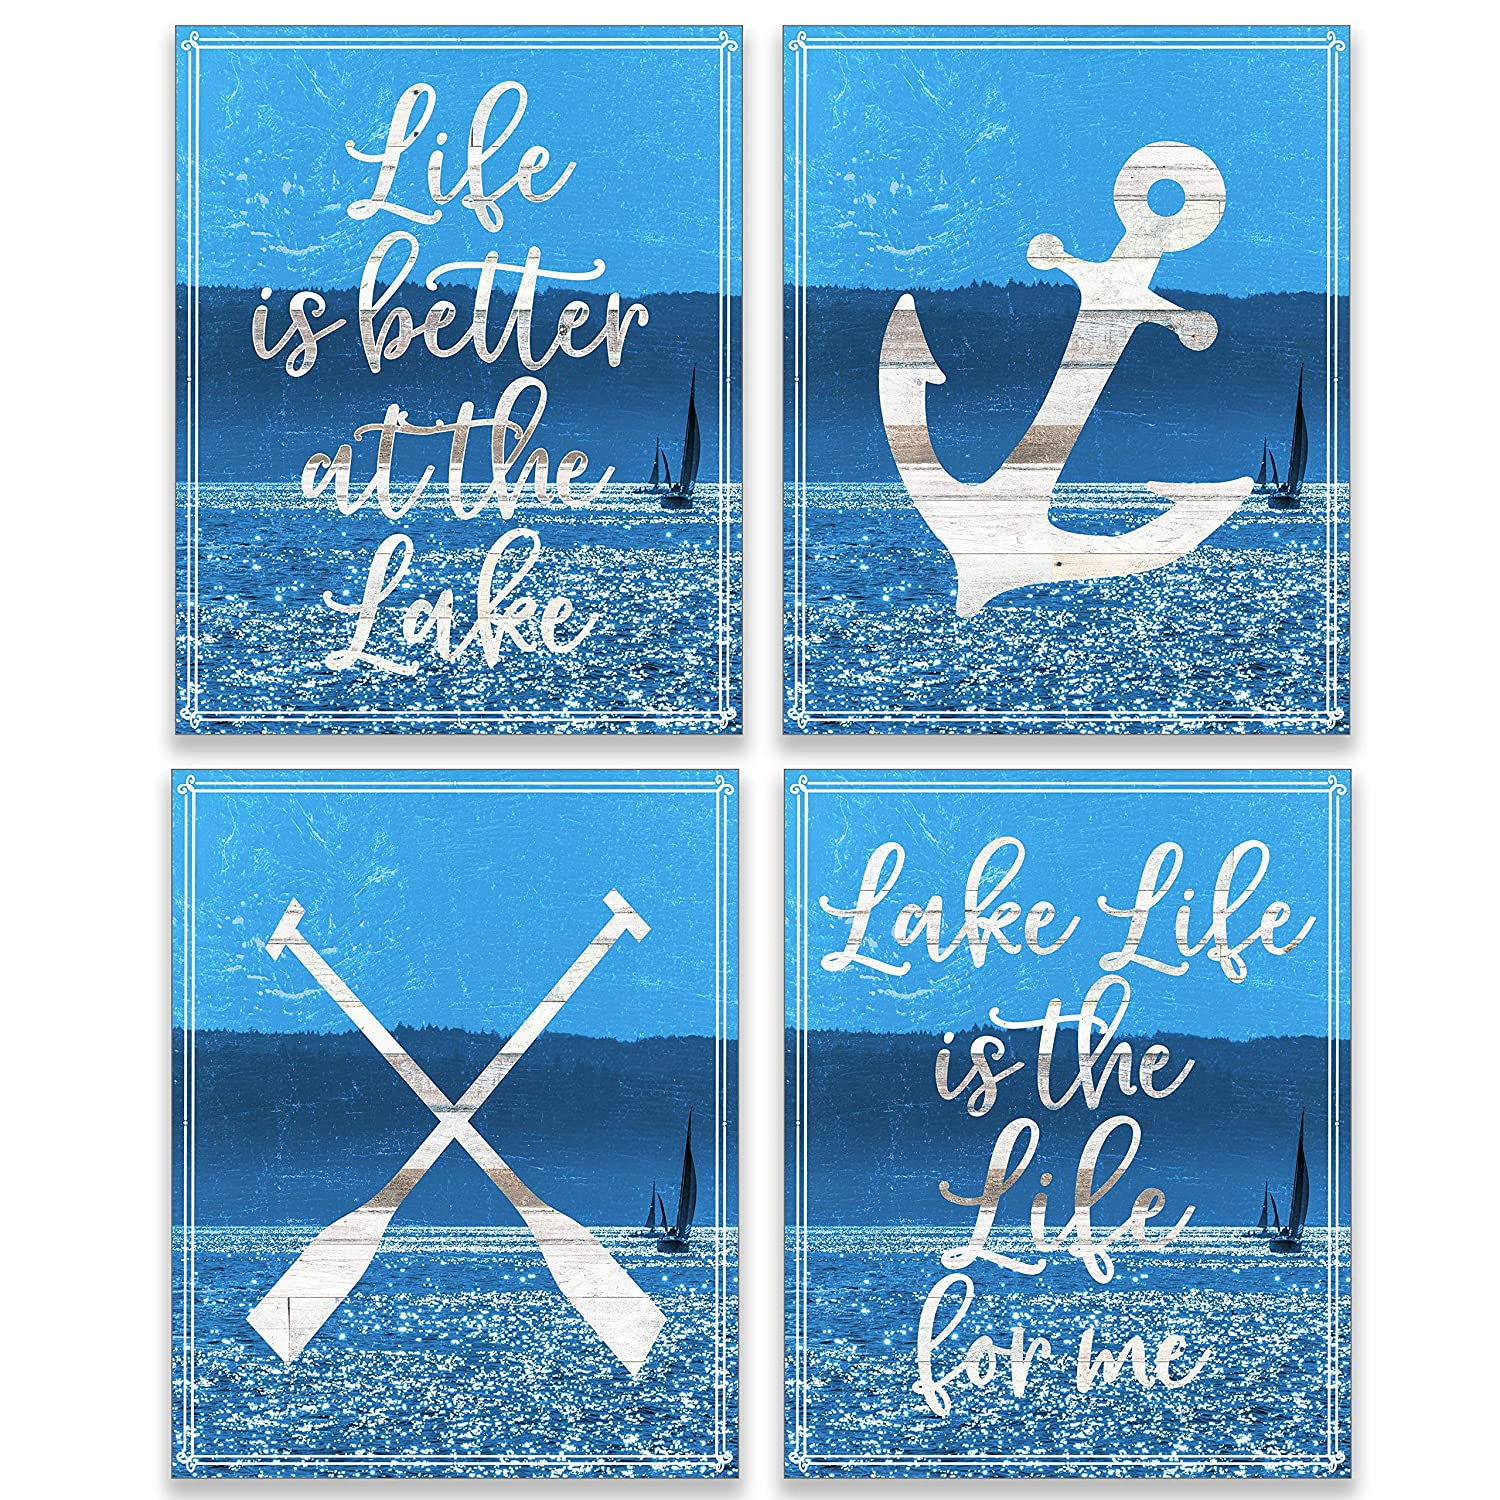 Amazon Com Lake House Decor Nautical Wall Country Cottage Accessories Lake Life Lakehouse Cabin Sign Lake Theme Home Signs Vintage Bathroom Decorations Set Of 4 8x10 Unframed Handmade